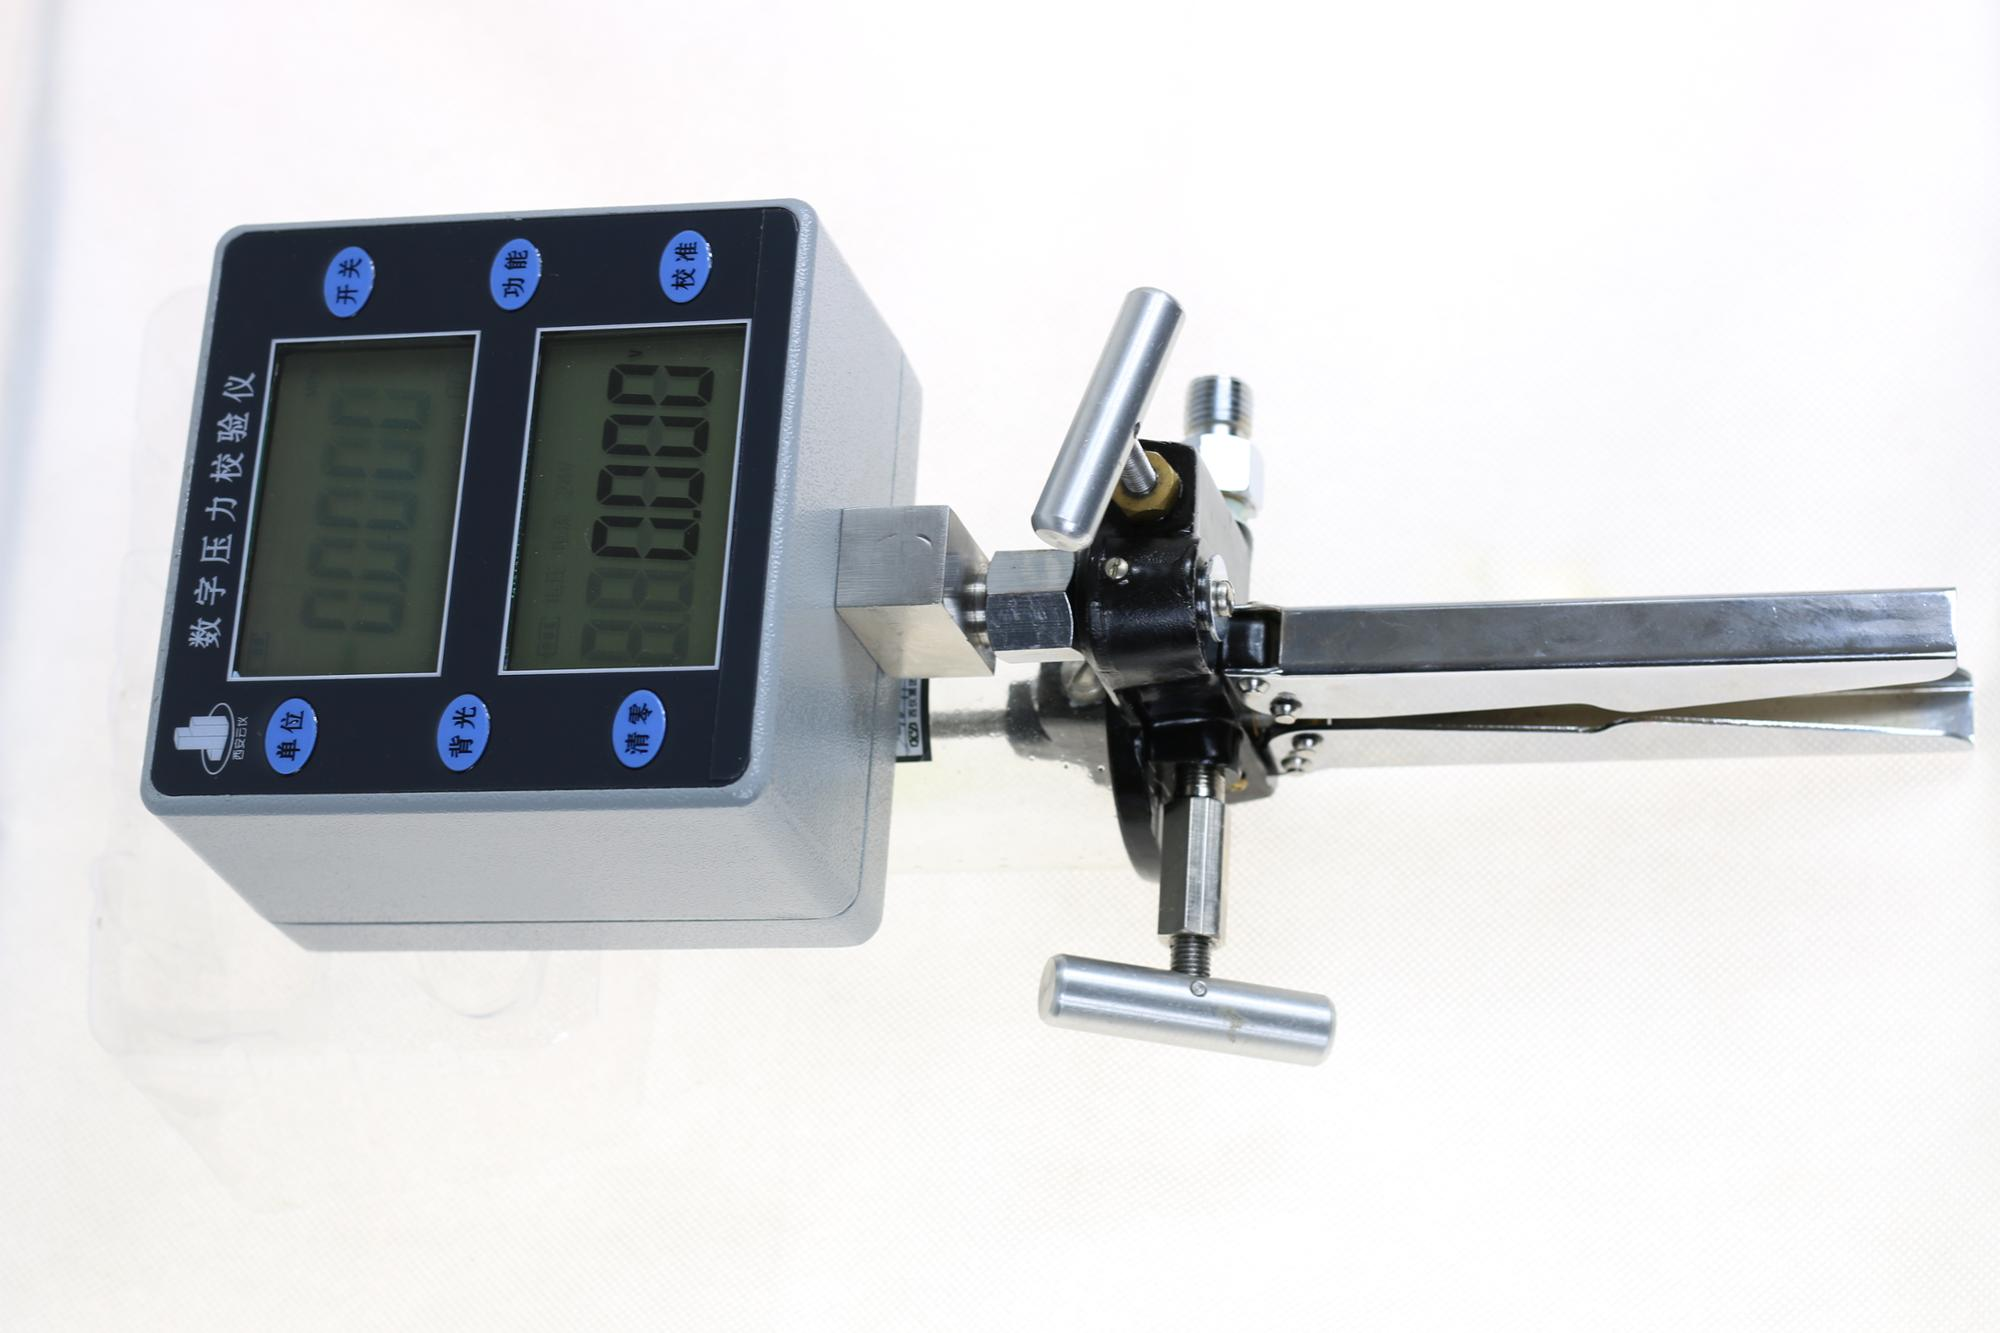 Digital portable hand pressure transmitter calibration